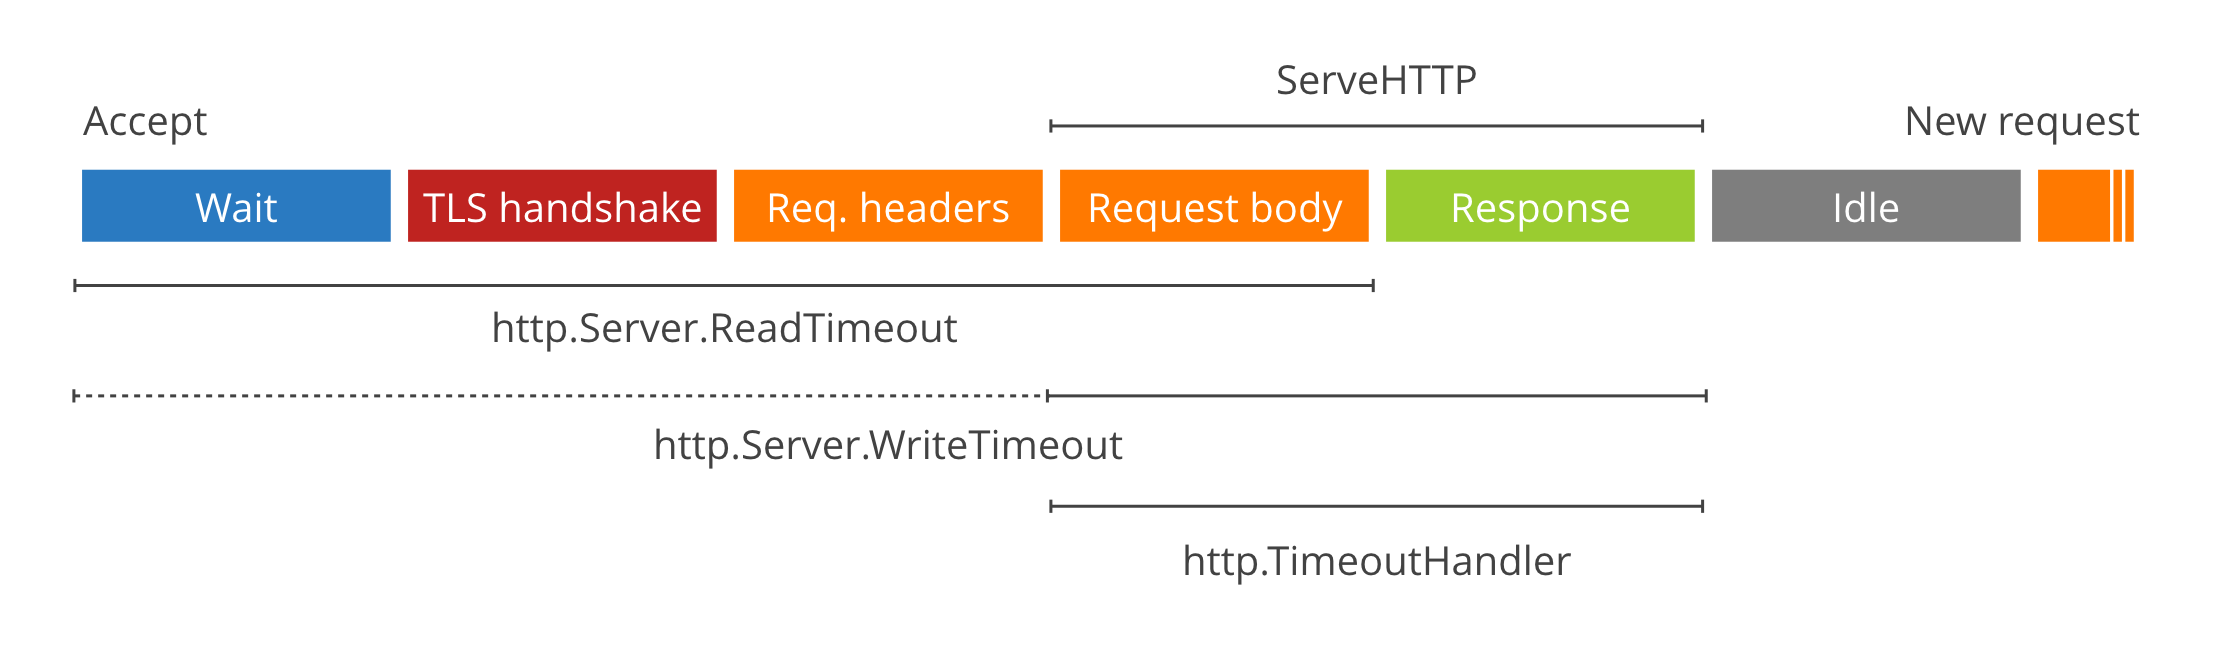 Go net/http 超时指导(The complete guide to Go net/http timeouts)